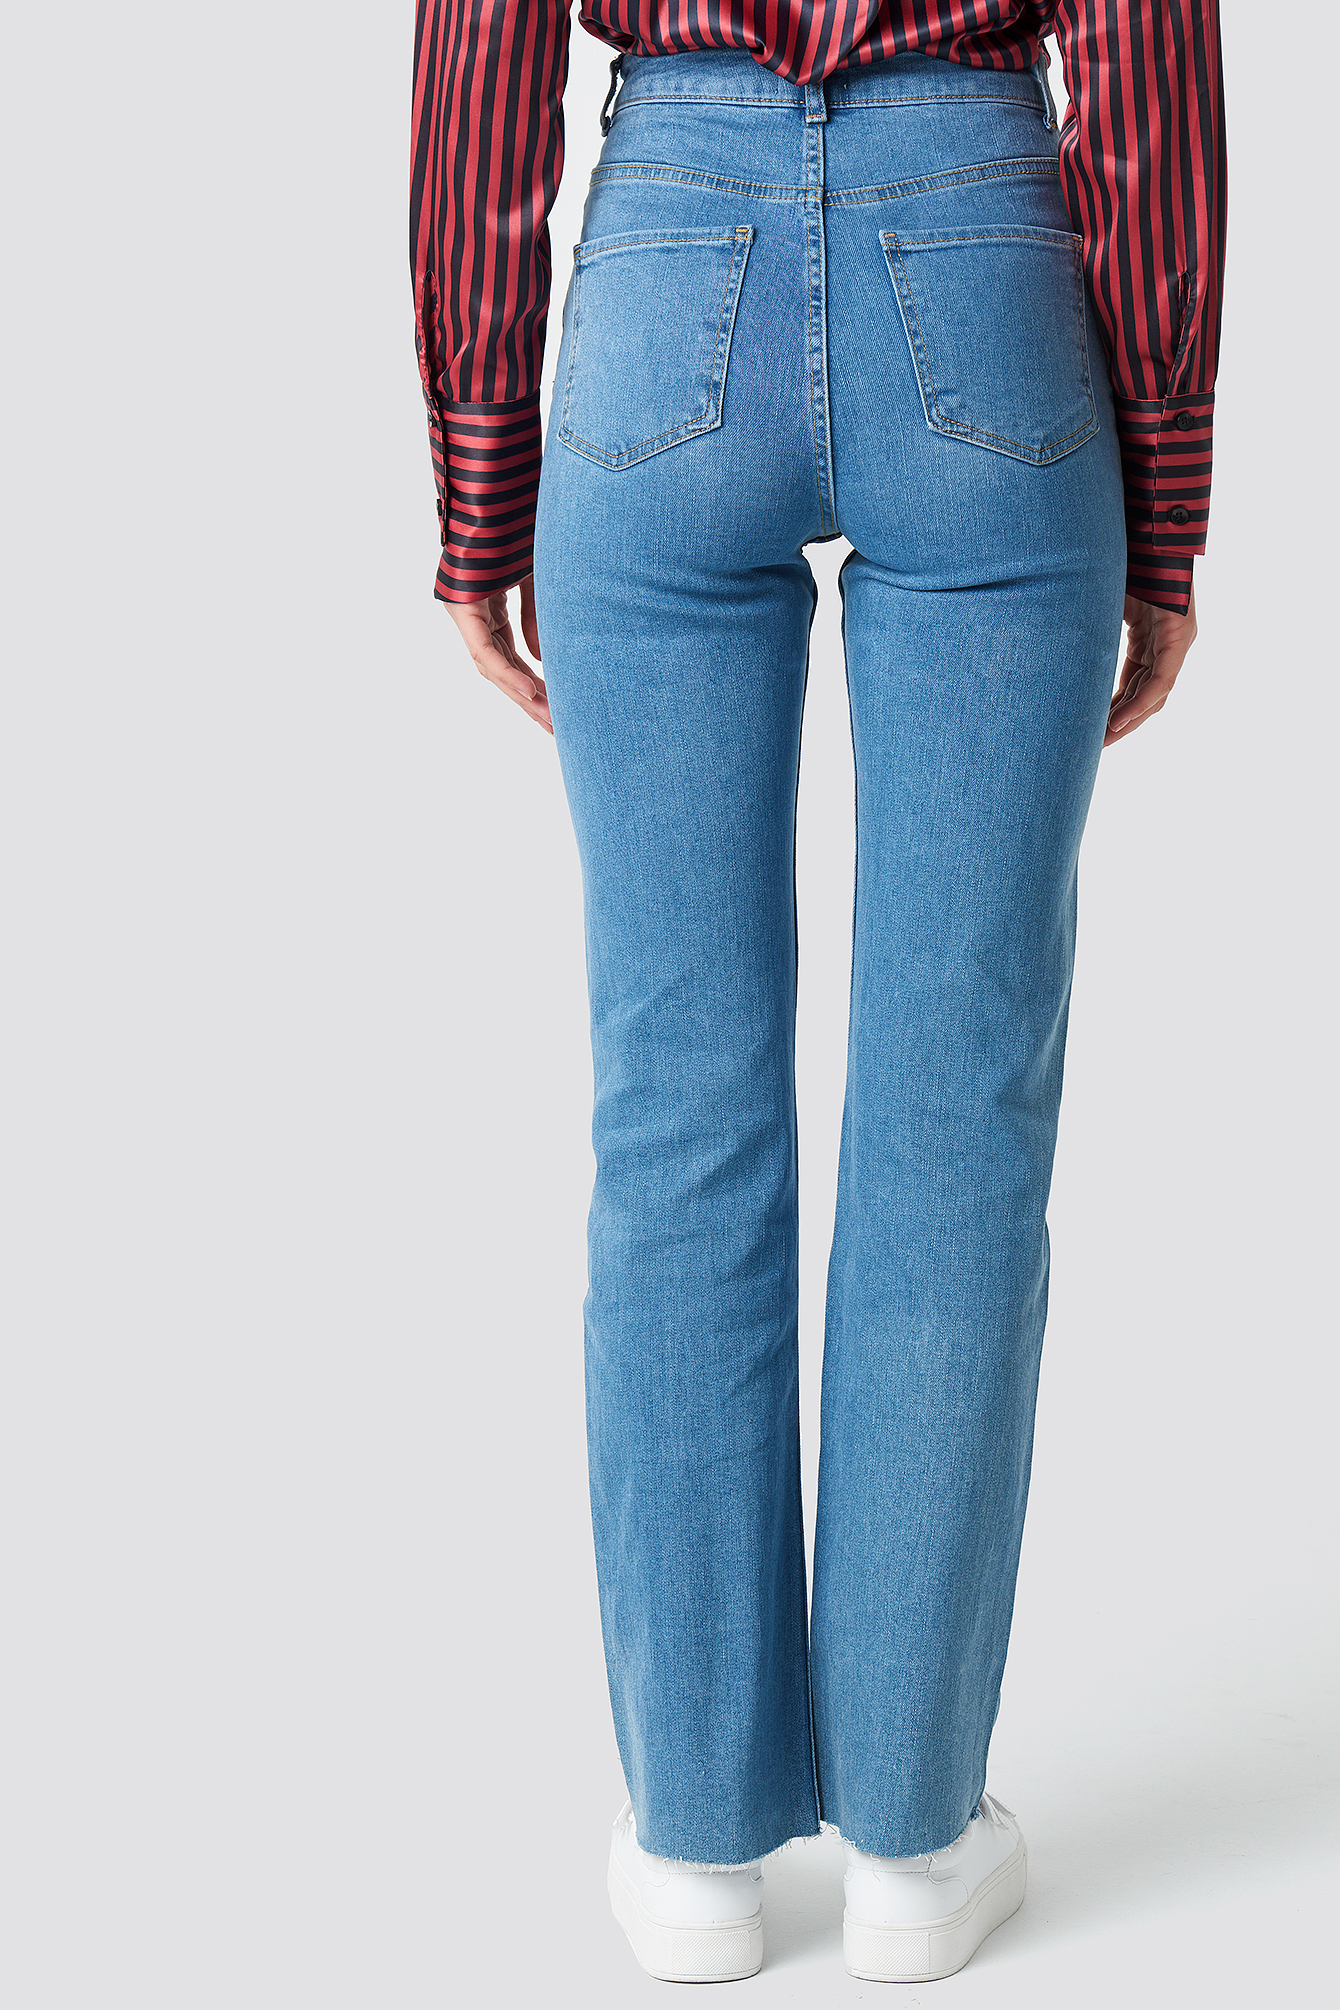 Blue Denim Raw Edge Jeans